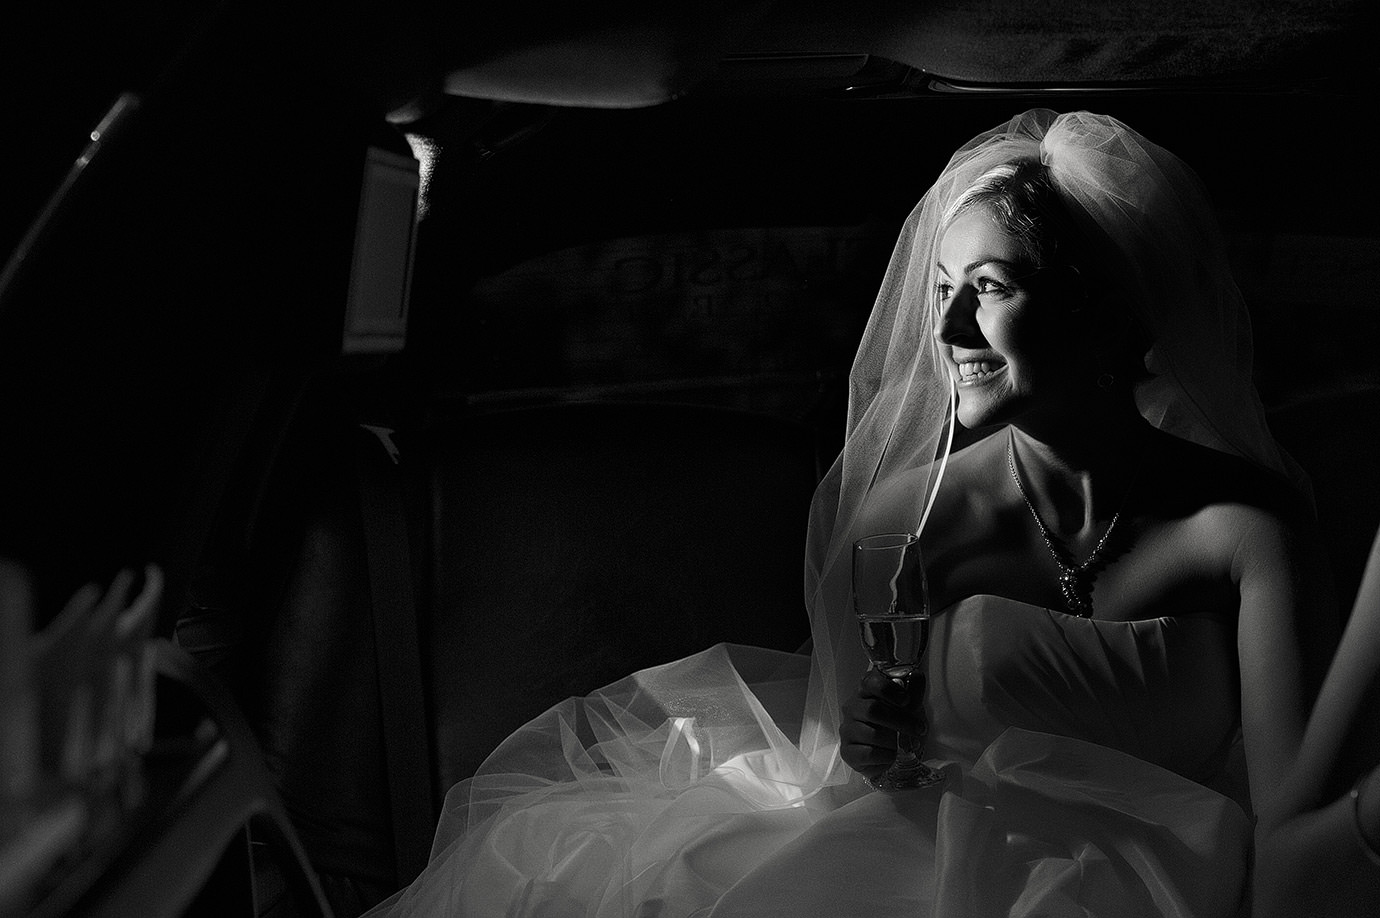 halifax_wedding_photographers_Jeff_Cooke_48